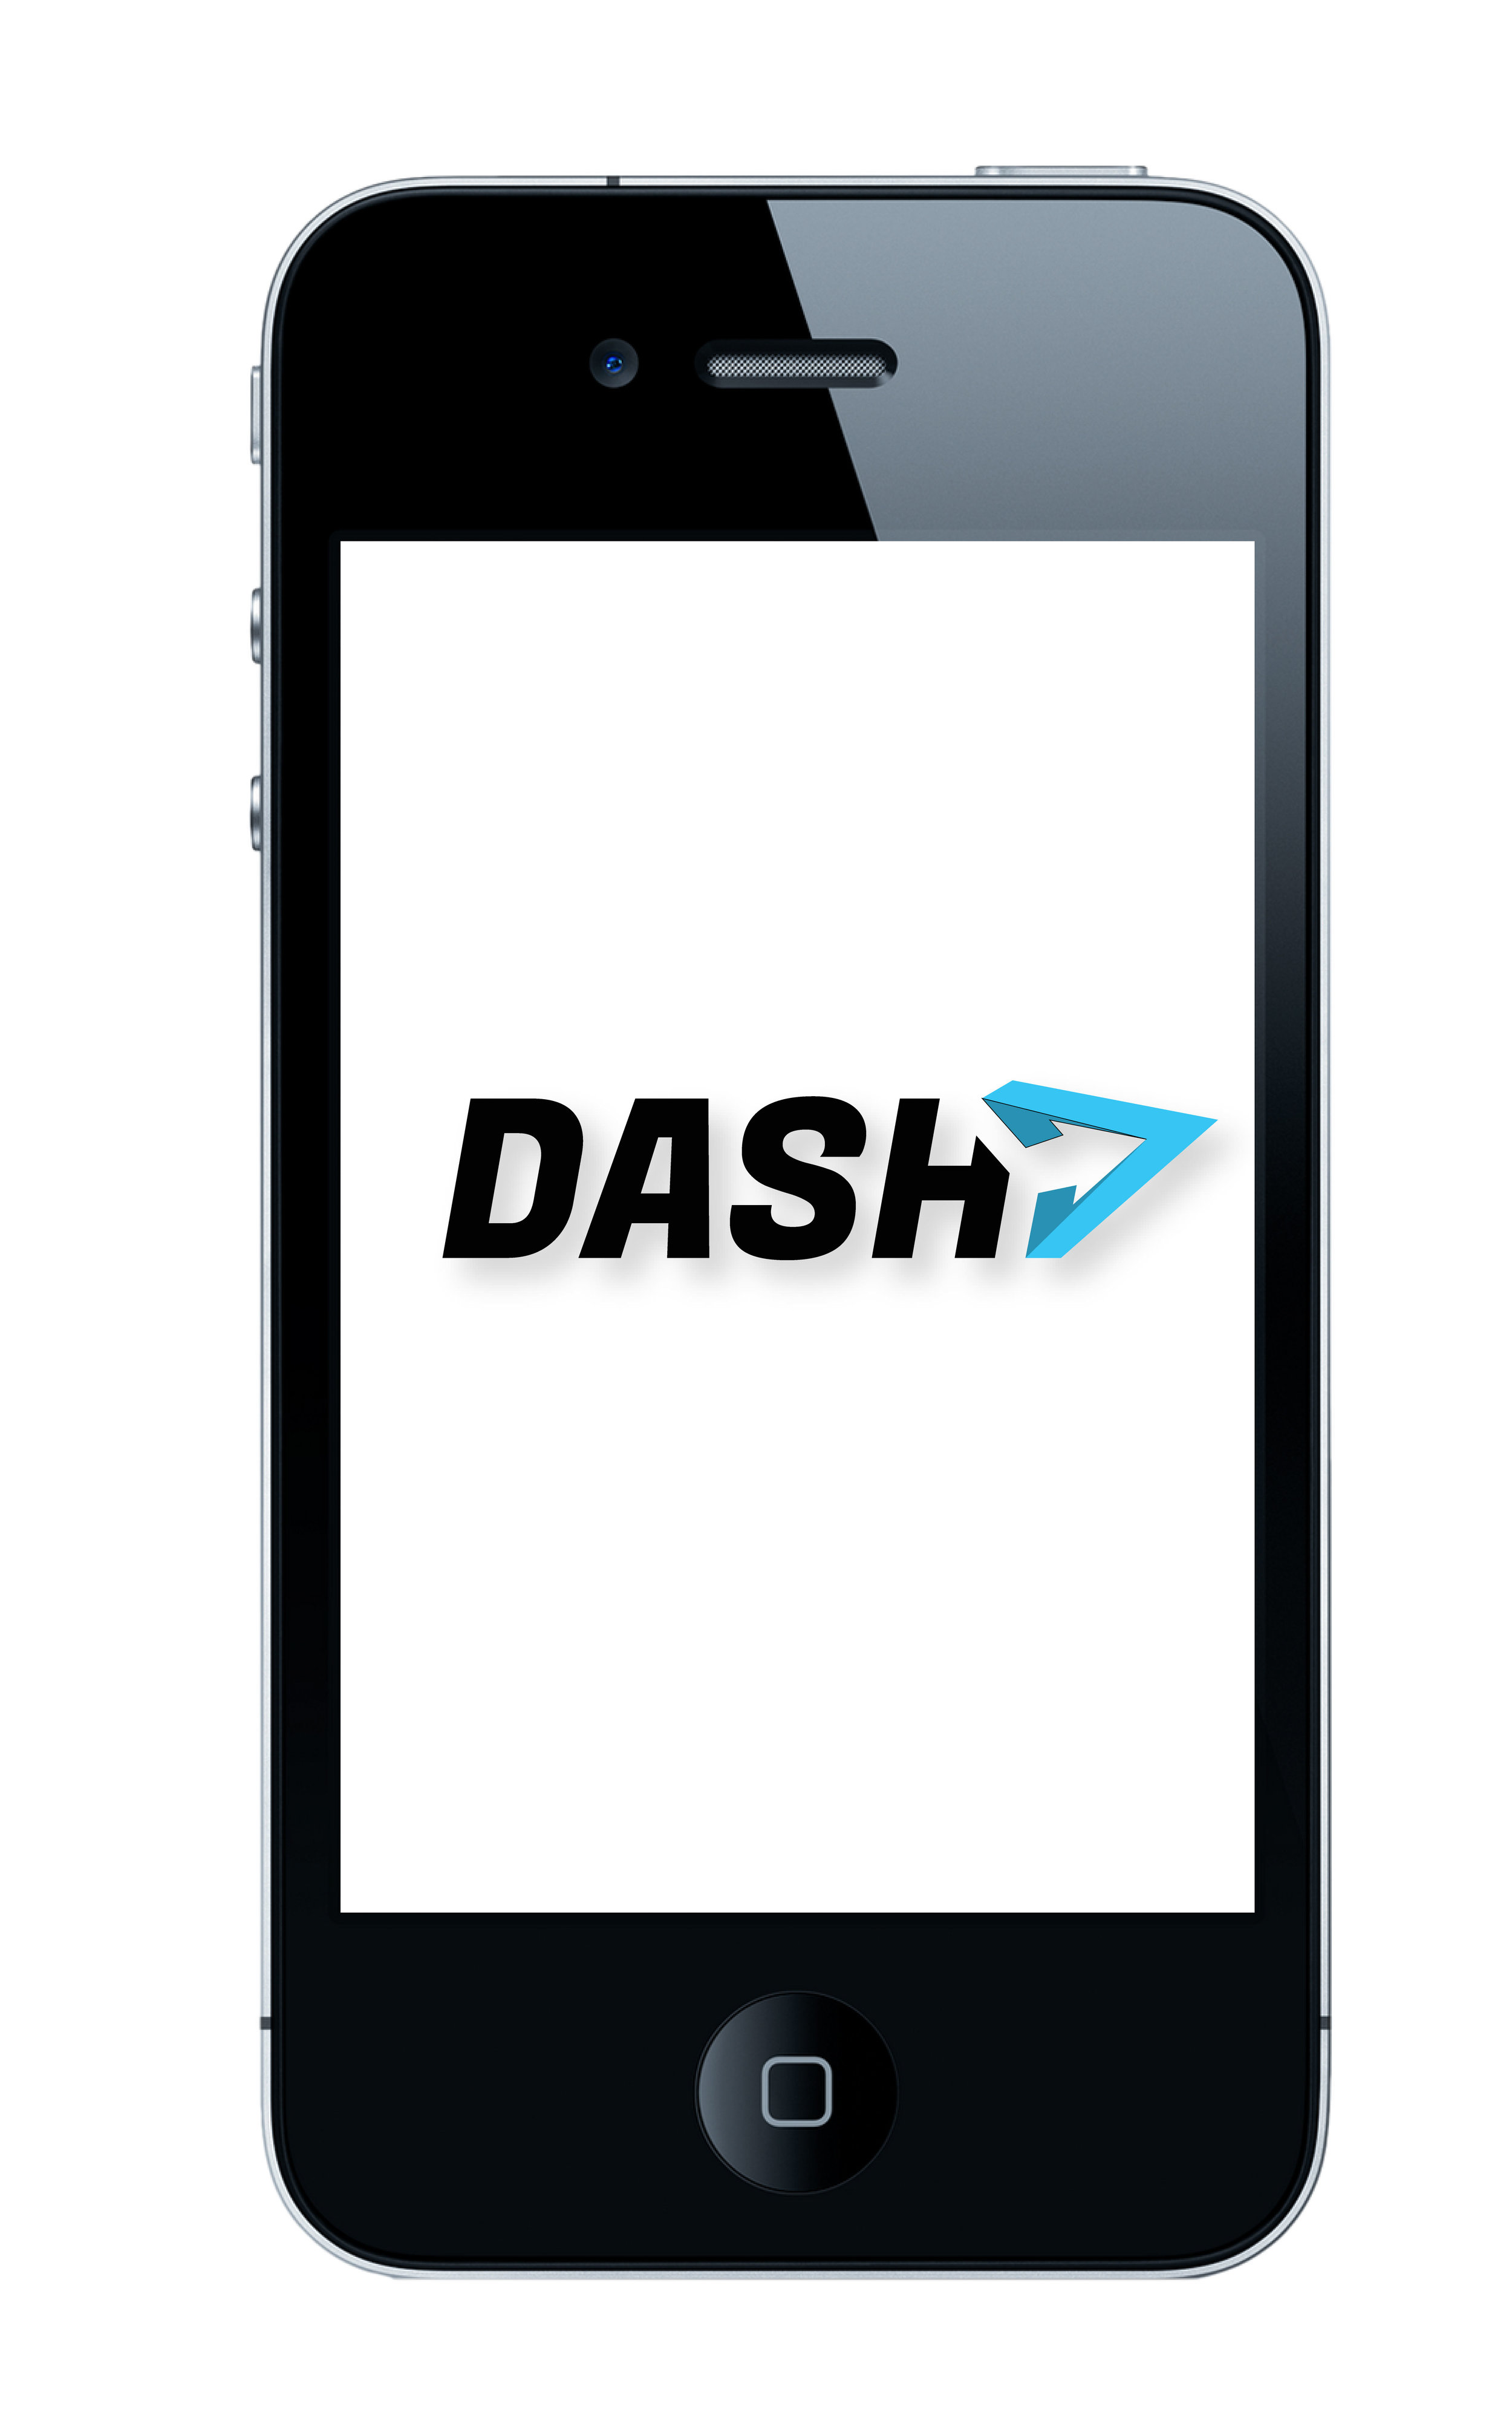 PEACE-OF-MIND SHIPPING. - REAL TIME FREIGHT TRACKINGORDER CREATIONINSTANT LTL QUOTINGINVOICE MANAGEMENTSHIP SMARTER WITH OUR DASH WEB PORTAL.